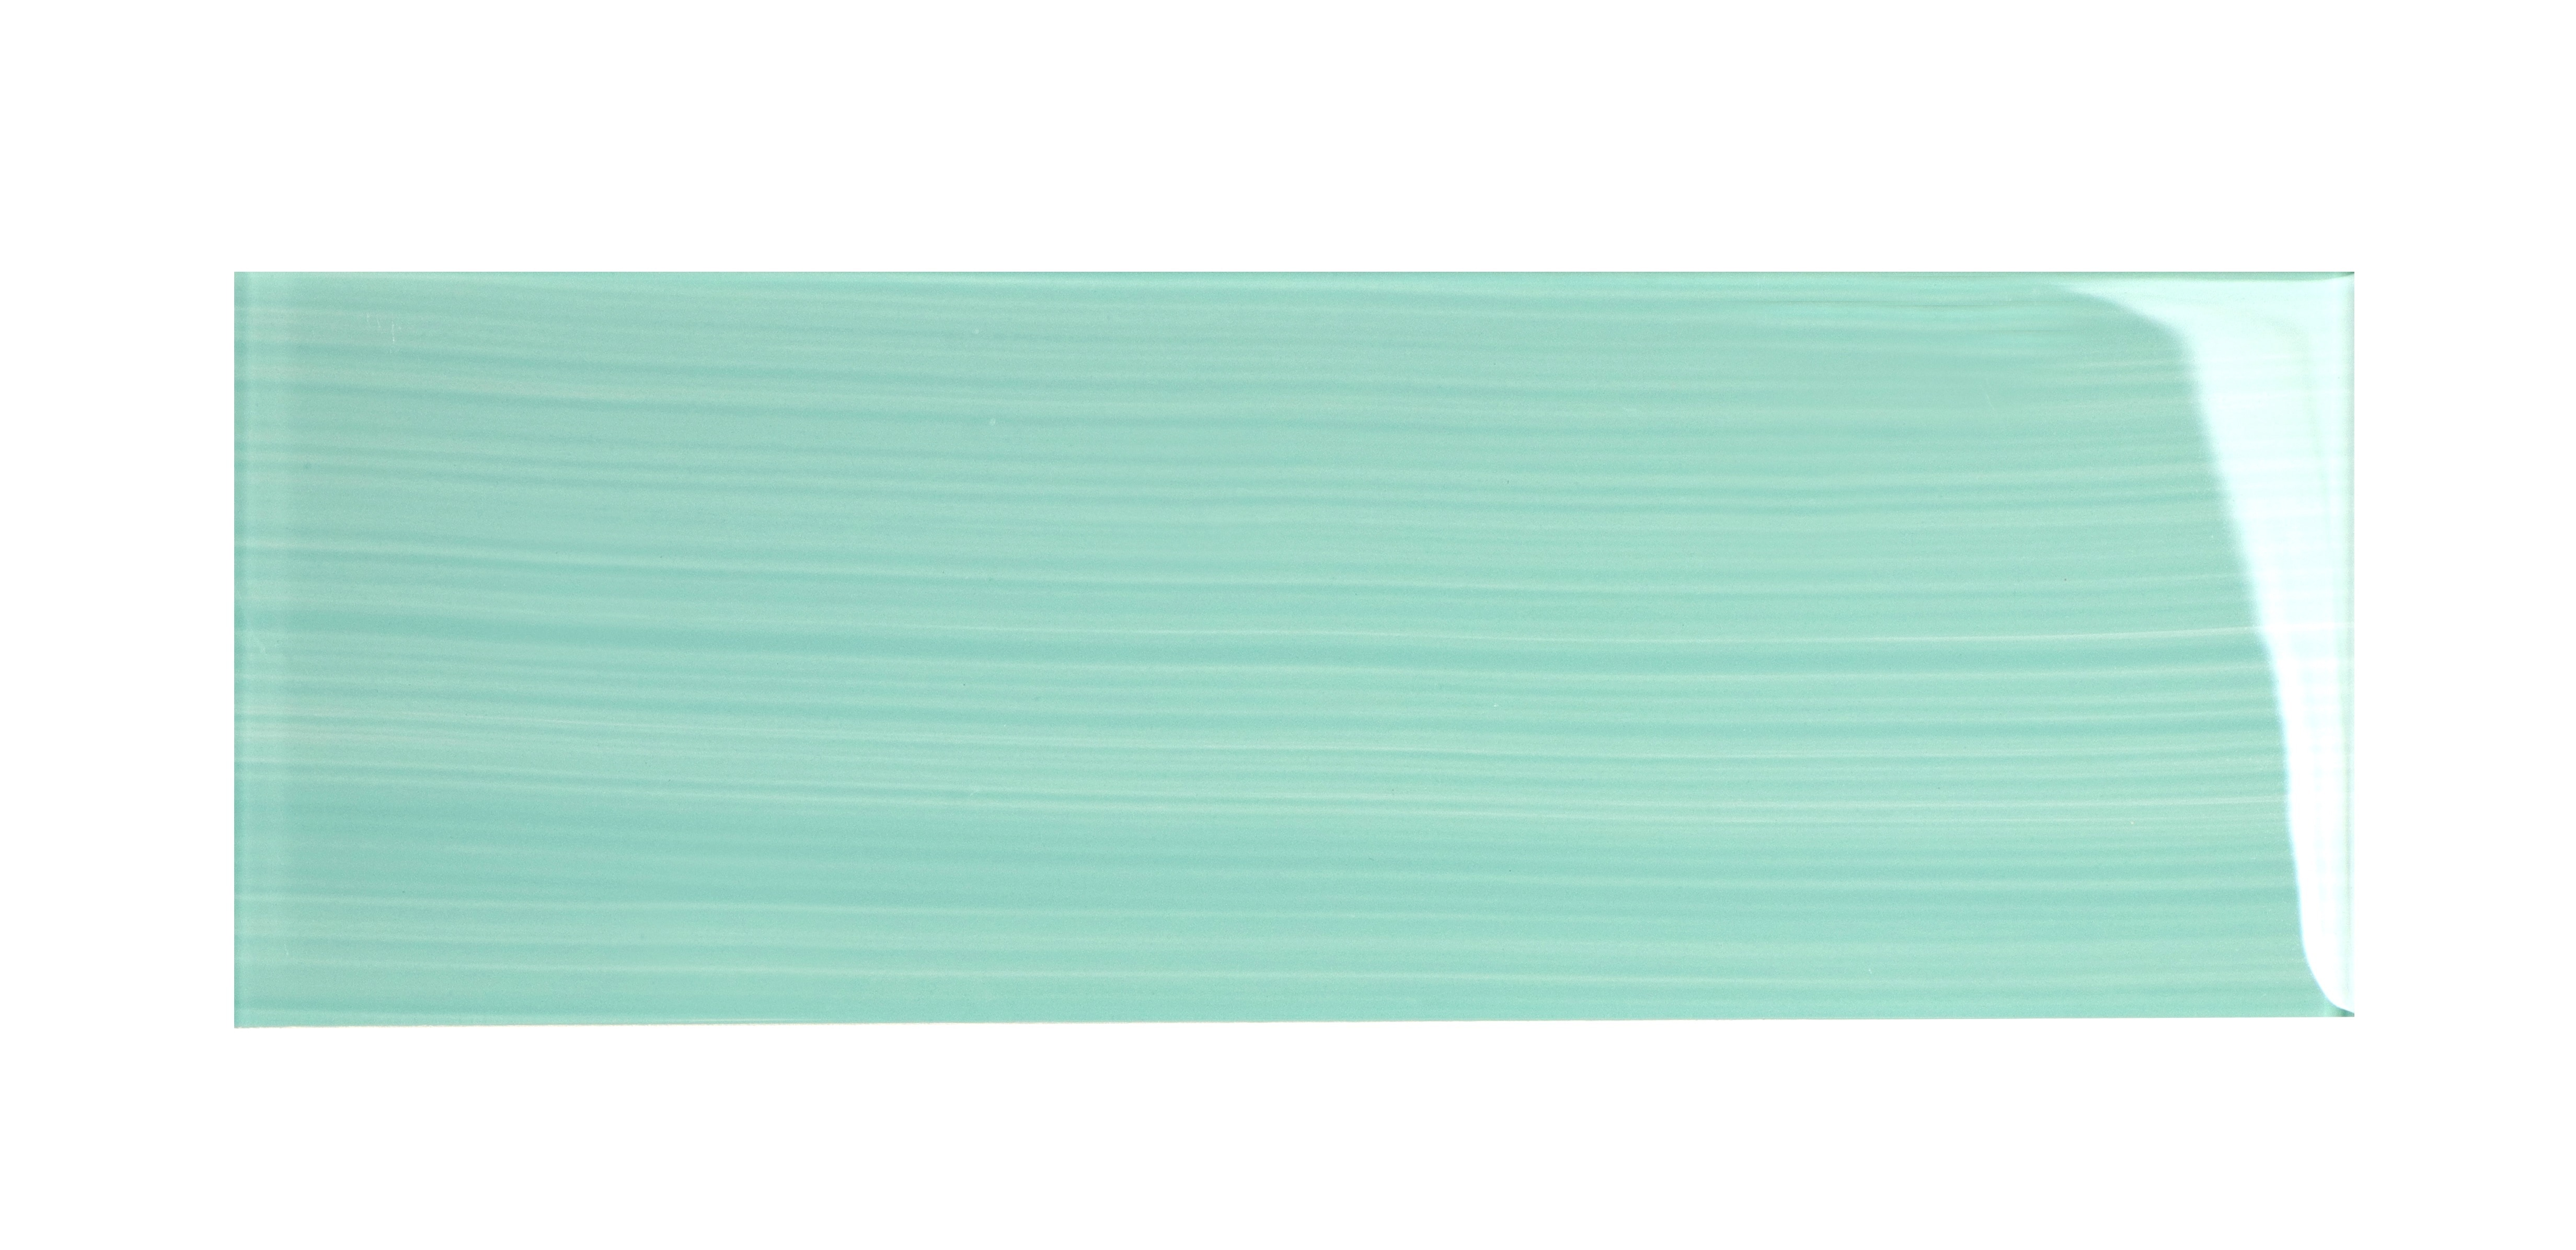 """Glass Subway Tile / 4 x 12 x 0.31 inches / Glossy Hand Painted Individual 4"""" x 12"""" Glass Subway Tile in Light Teal 0"""